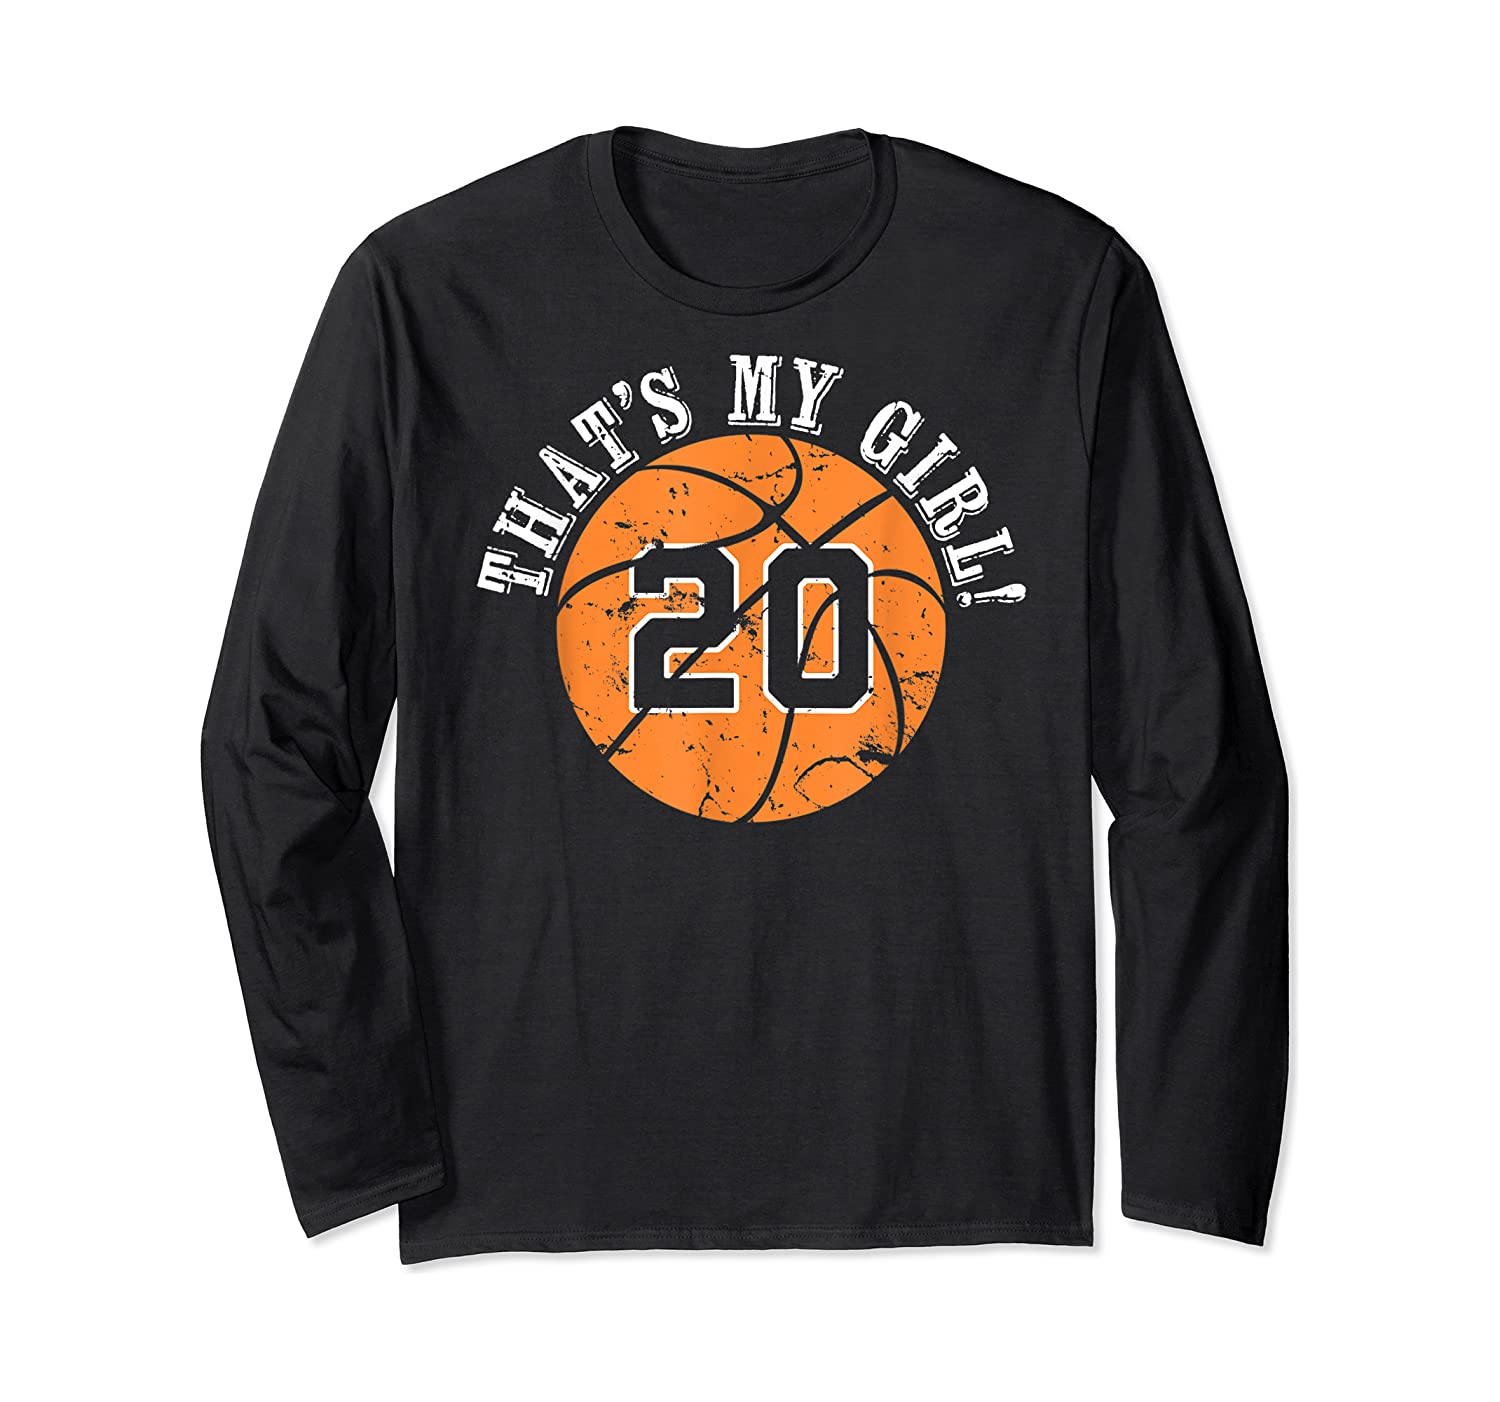 Unique That's My Girl #20 Basketball Player Mom Or Dad Gifts T-shirt Long Sleeve T-shirt